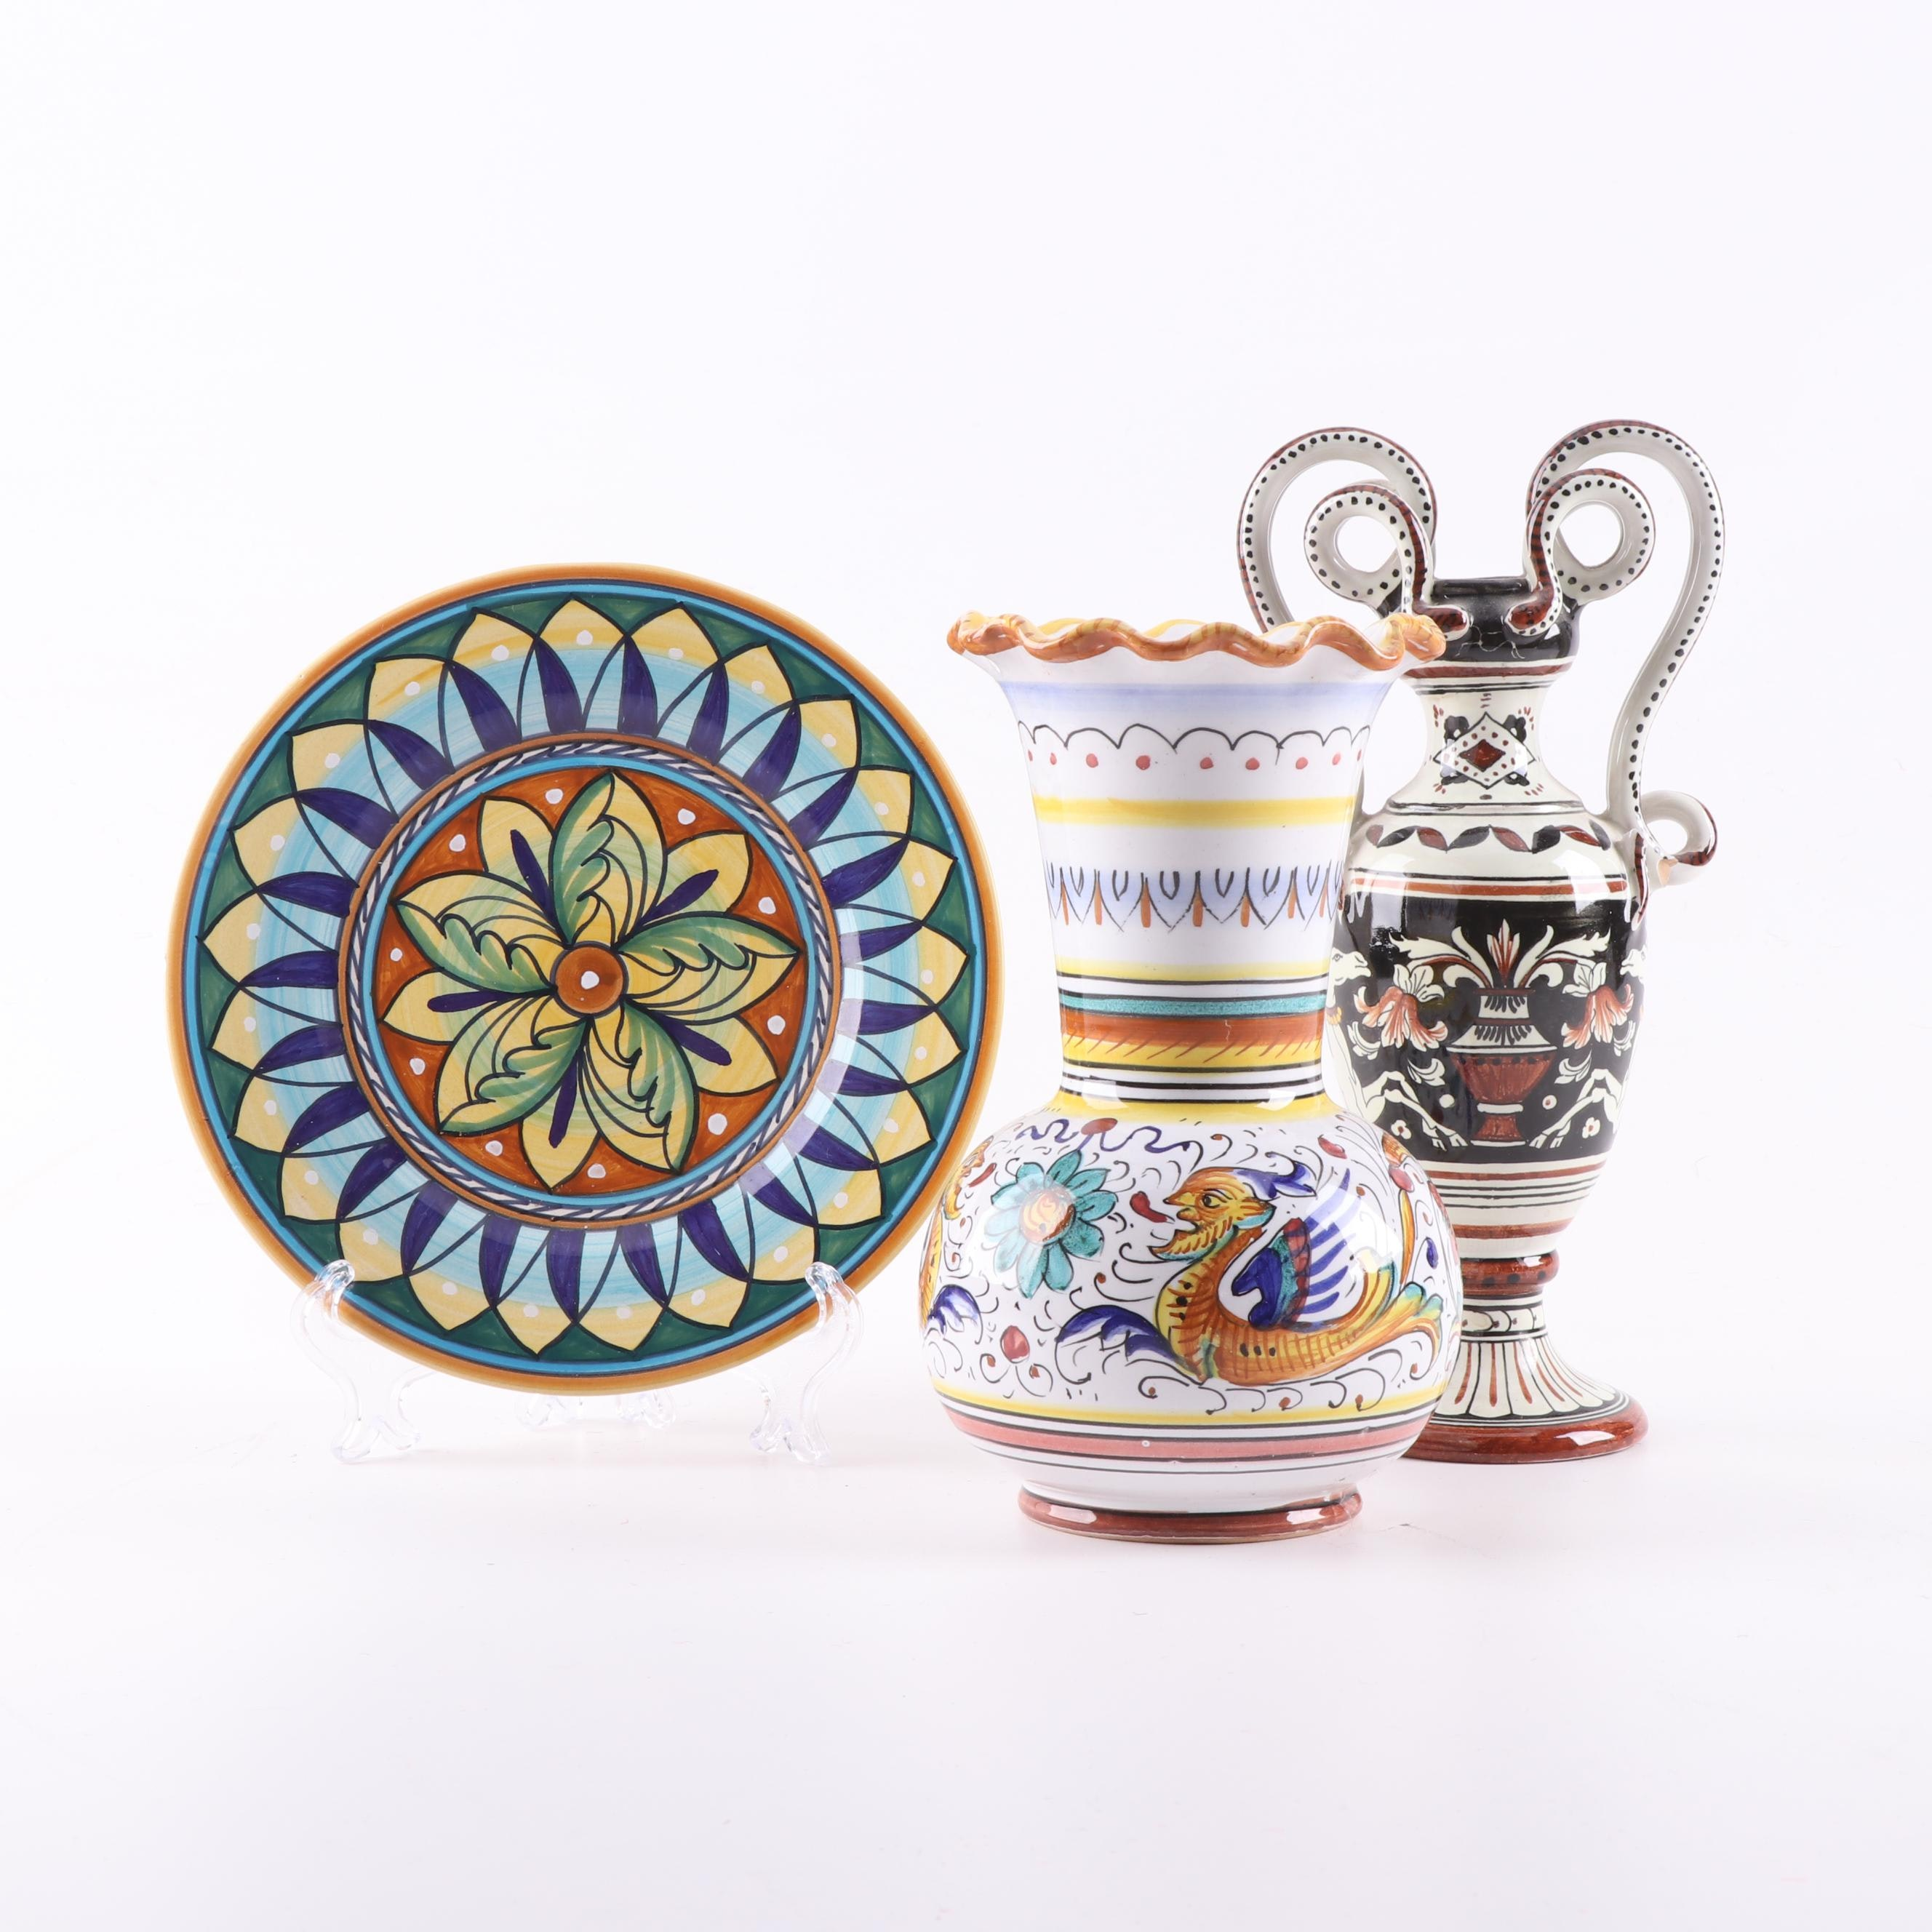 Deruta Italian Majolica Plate and Vases Including Raffaellesco